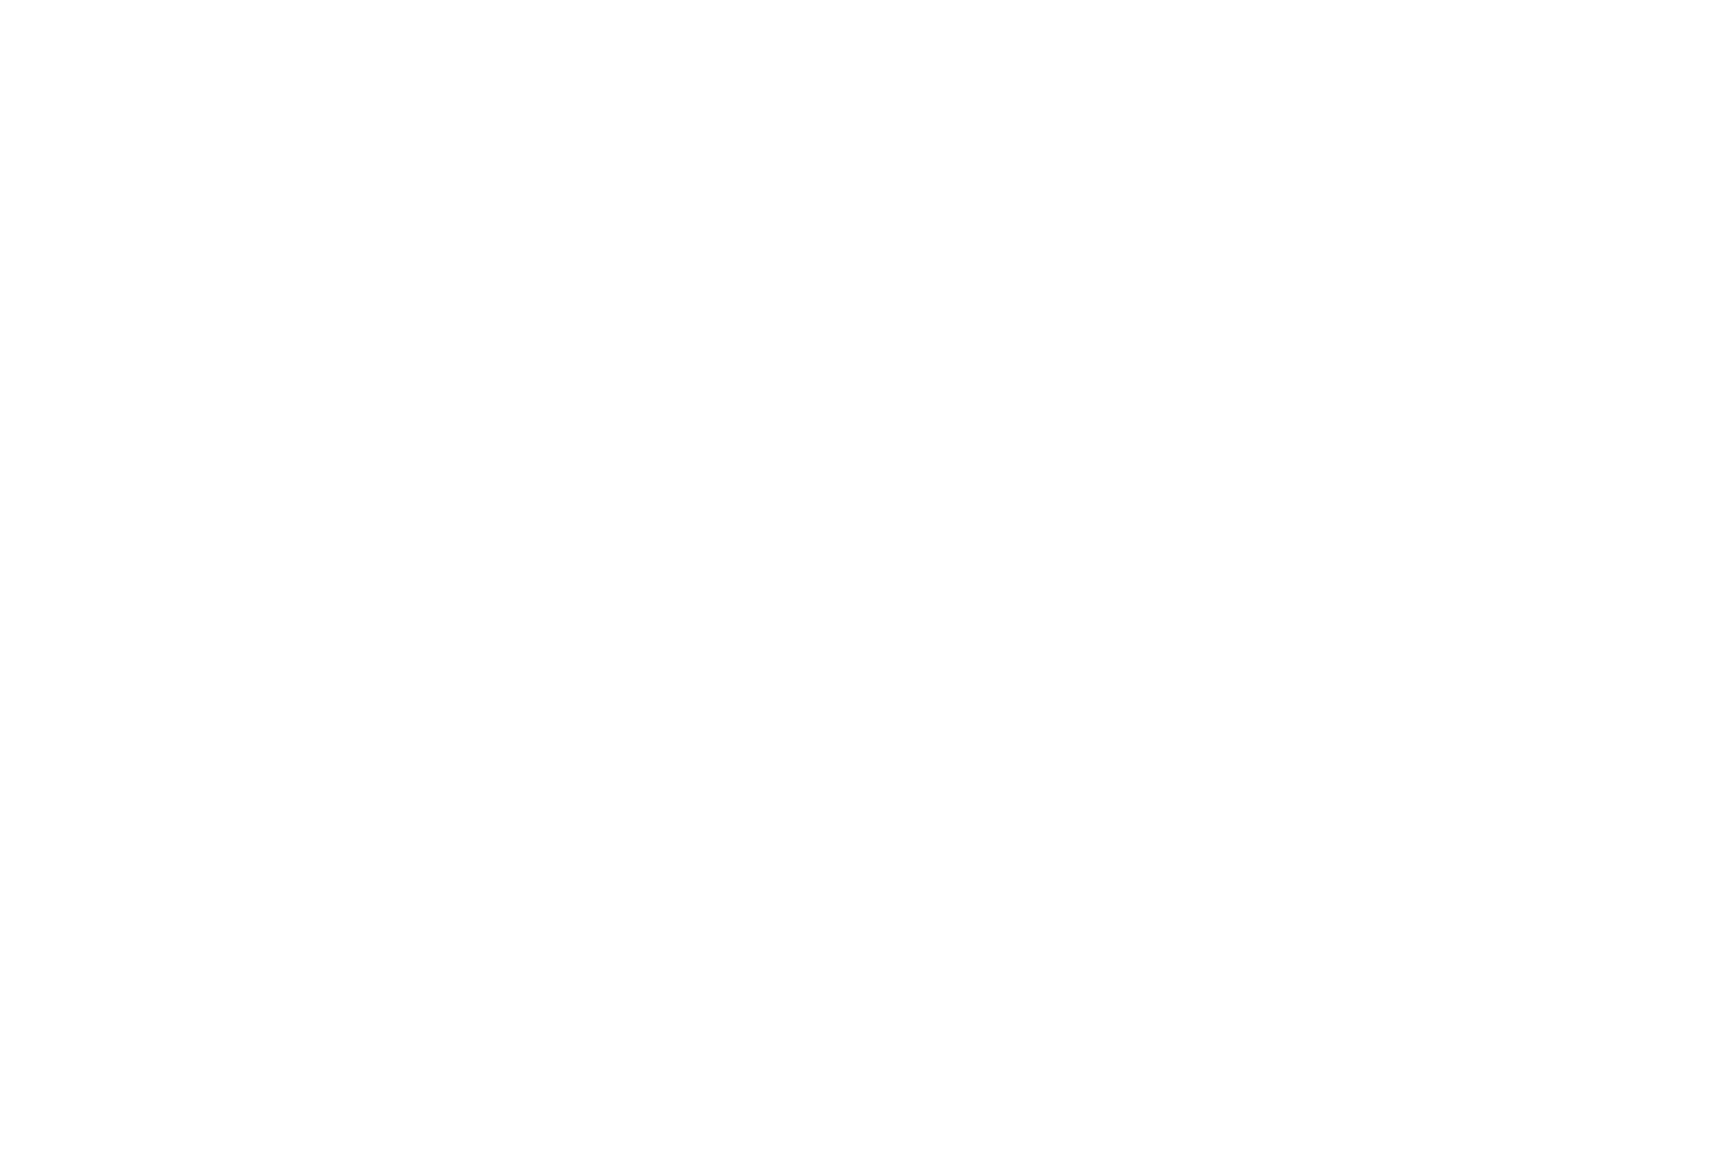 OFFICIAL SELECTION - TMFF - The Monthly Film Festival - 2016.png